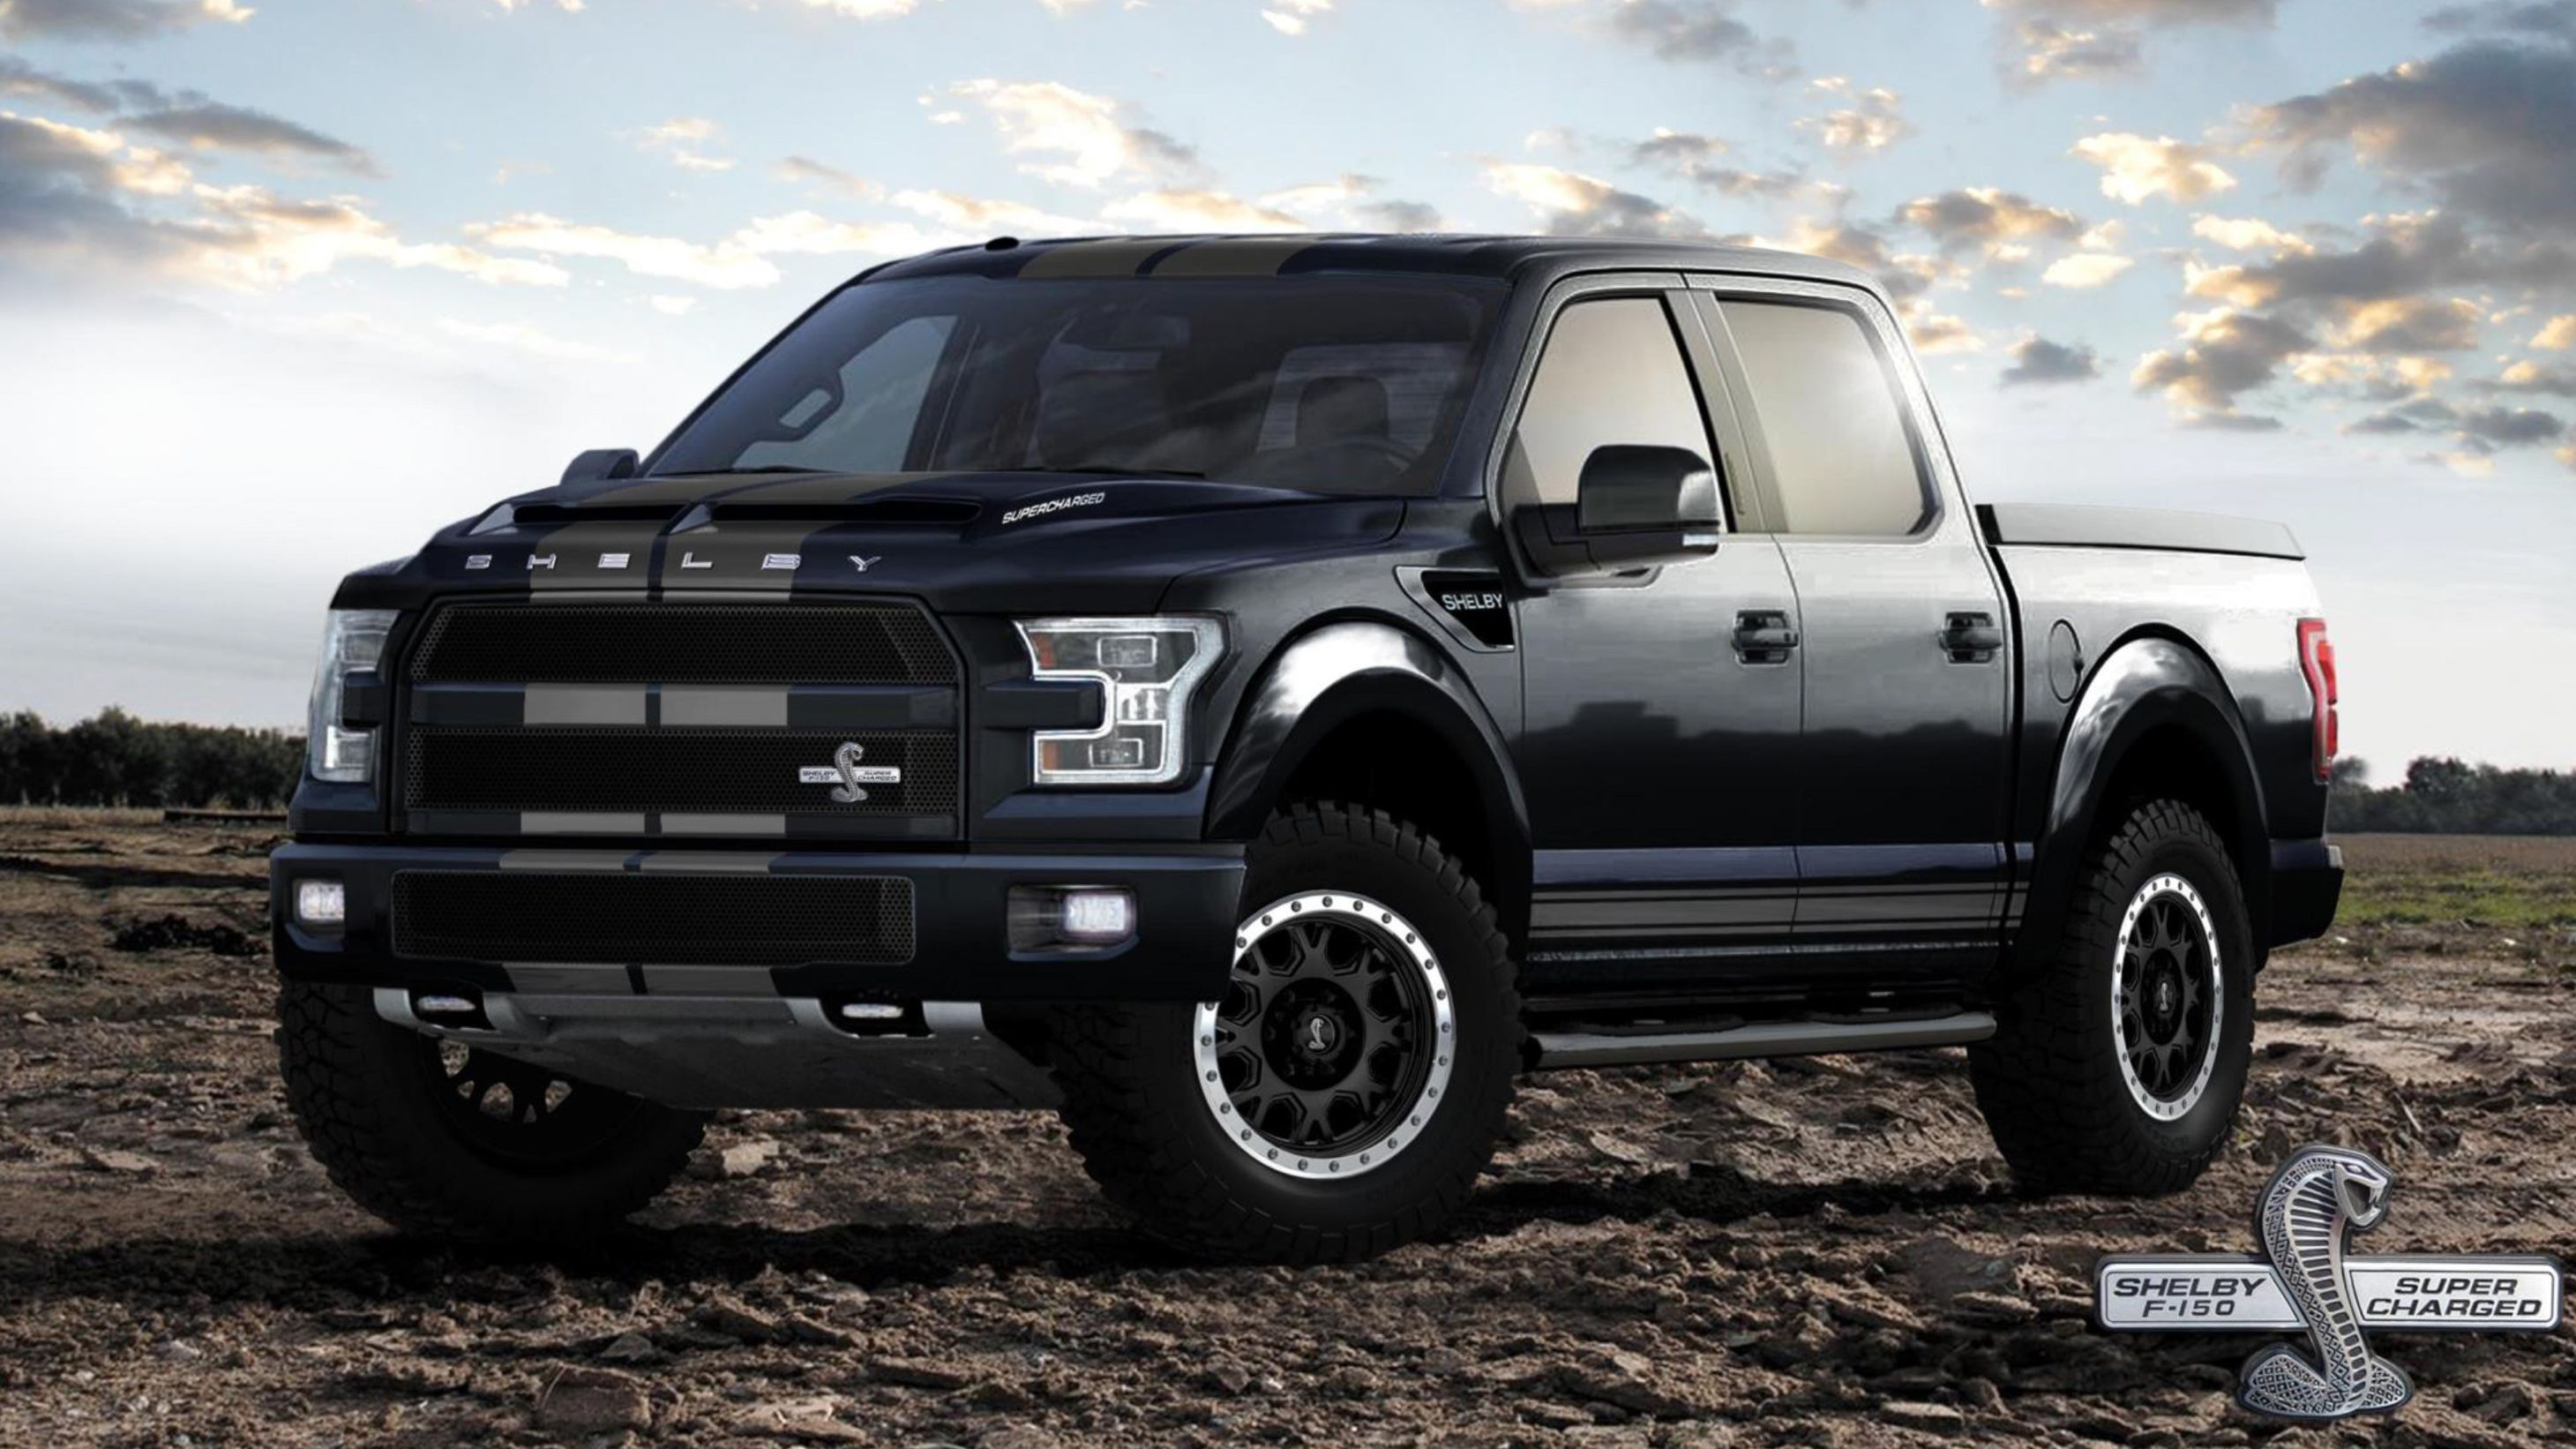 Ford f150 shelby 2016 limited production 700 hp turbo charged